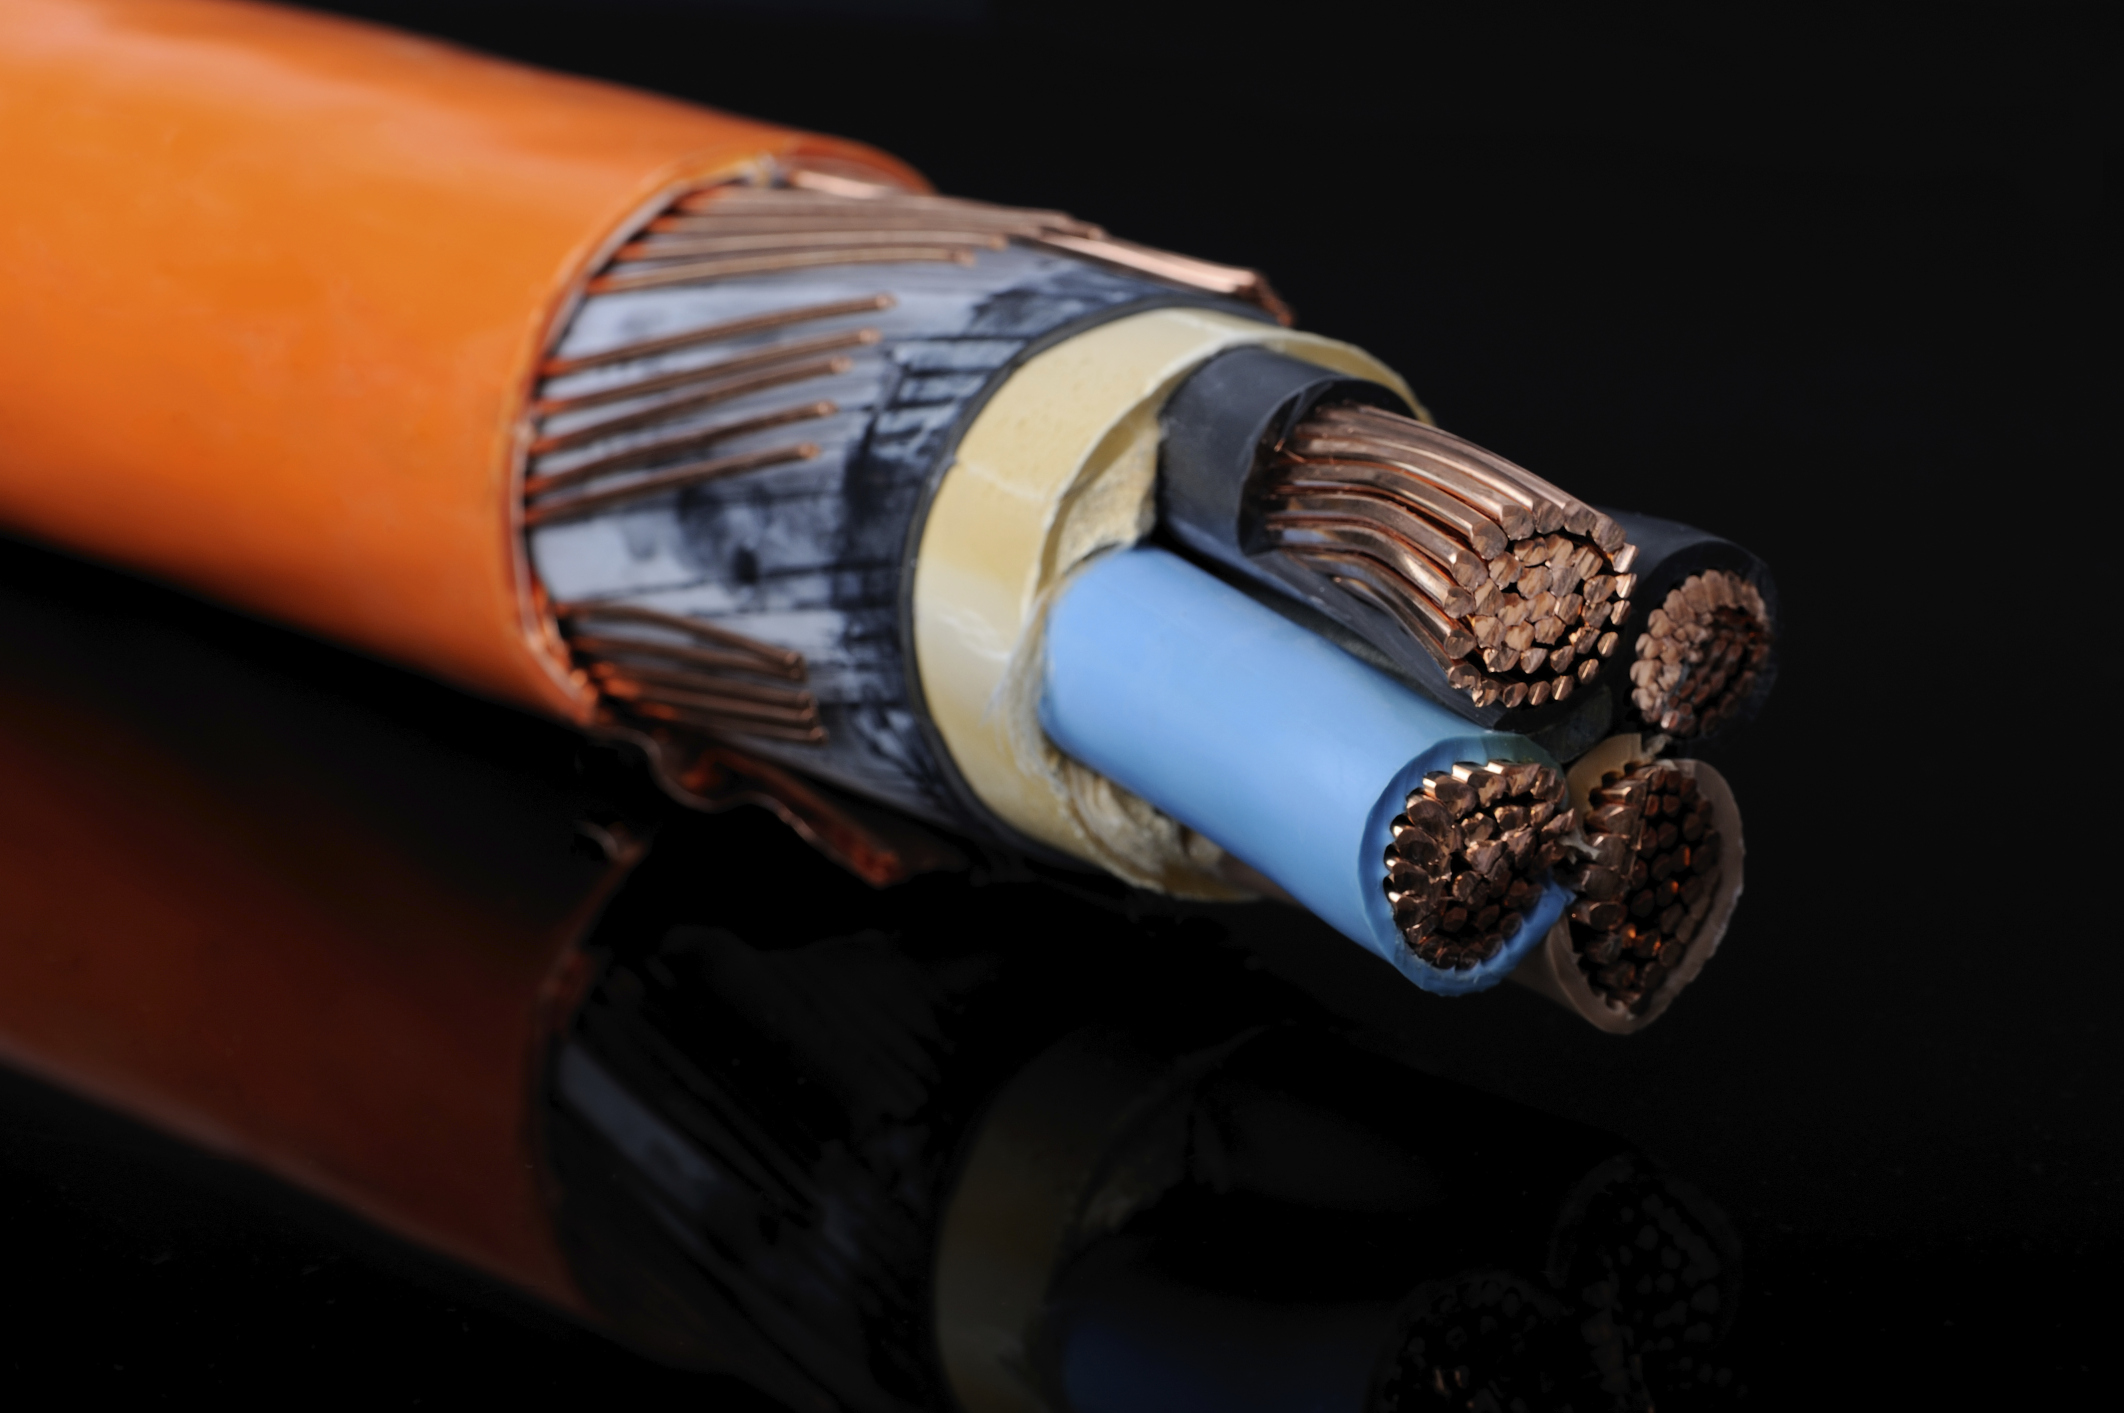 3 WAYS TO PROTECT YOUR ELECTRICAL CABLE ASSETS Part 1